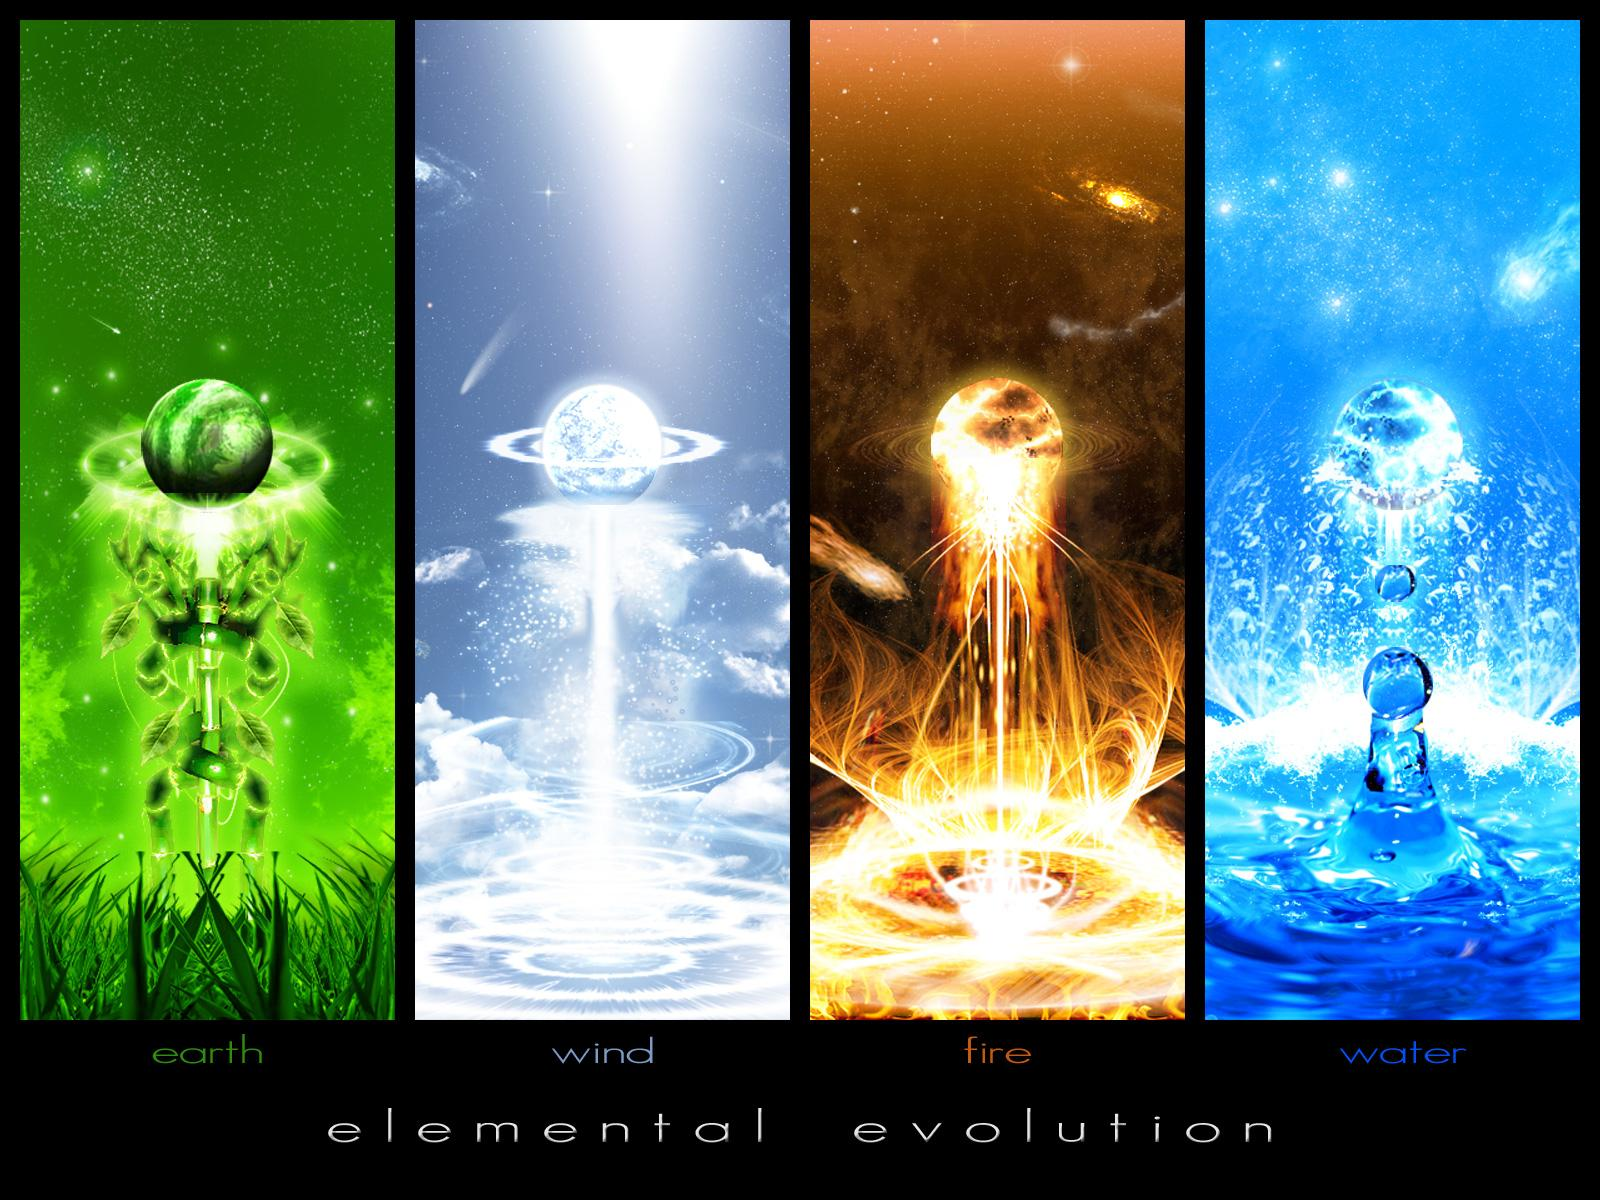 elemental_evolution_by_bdotward